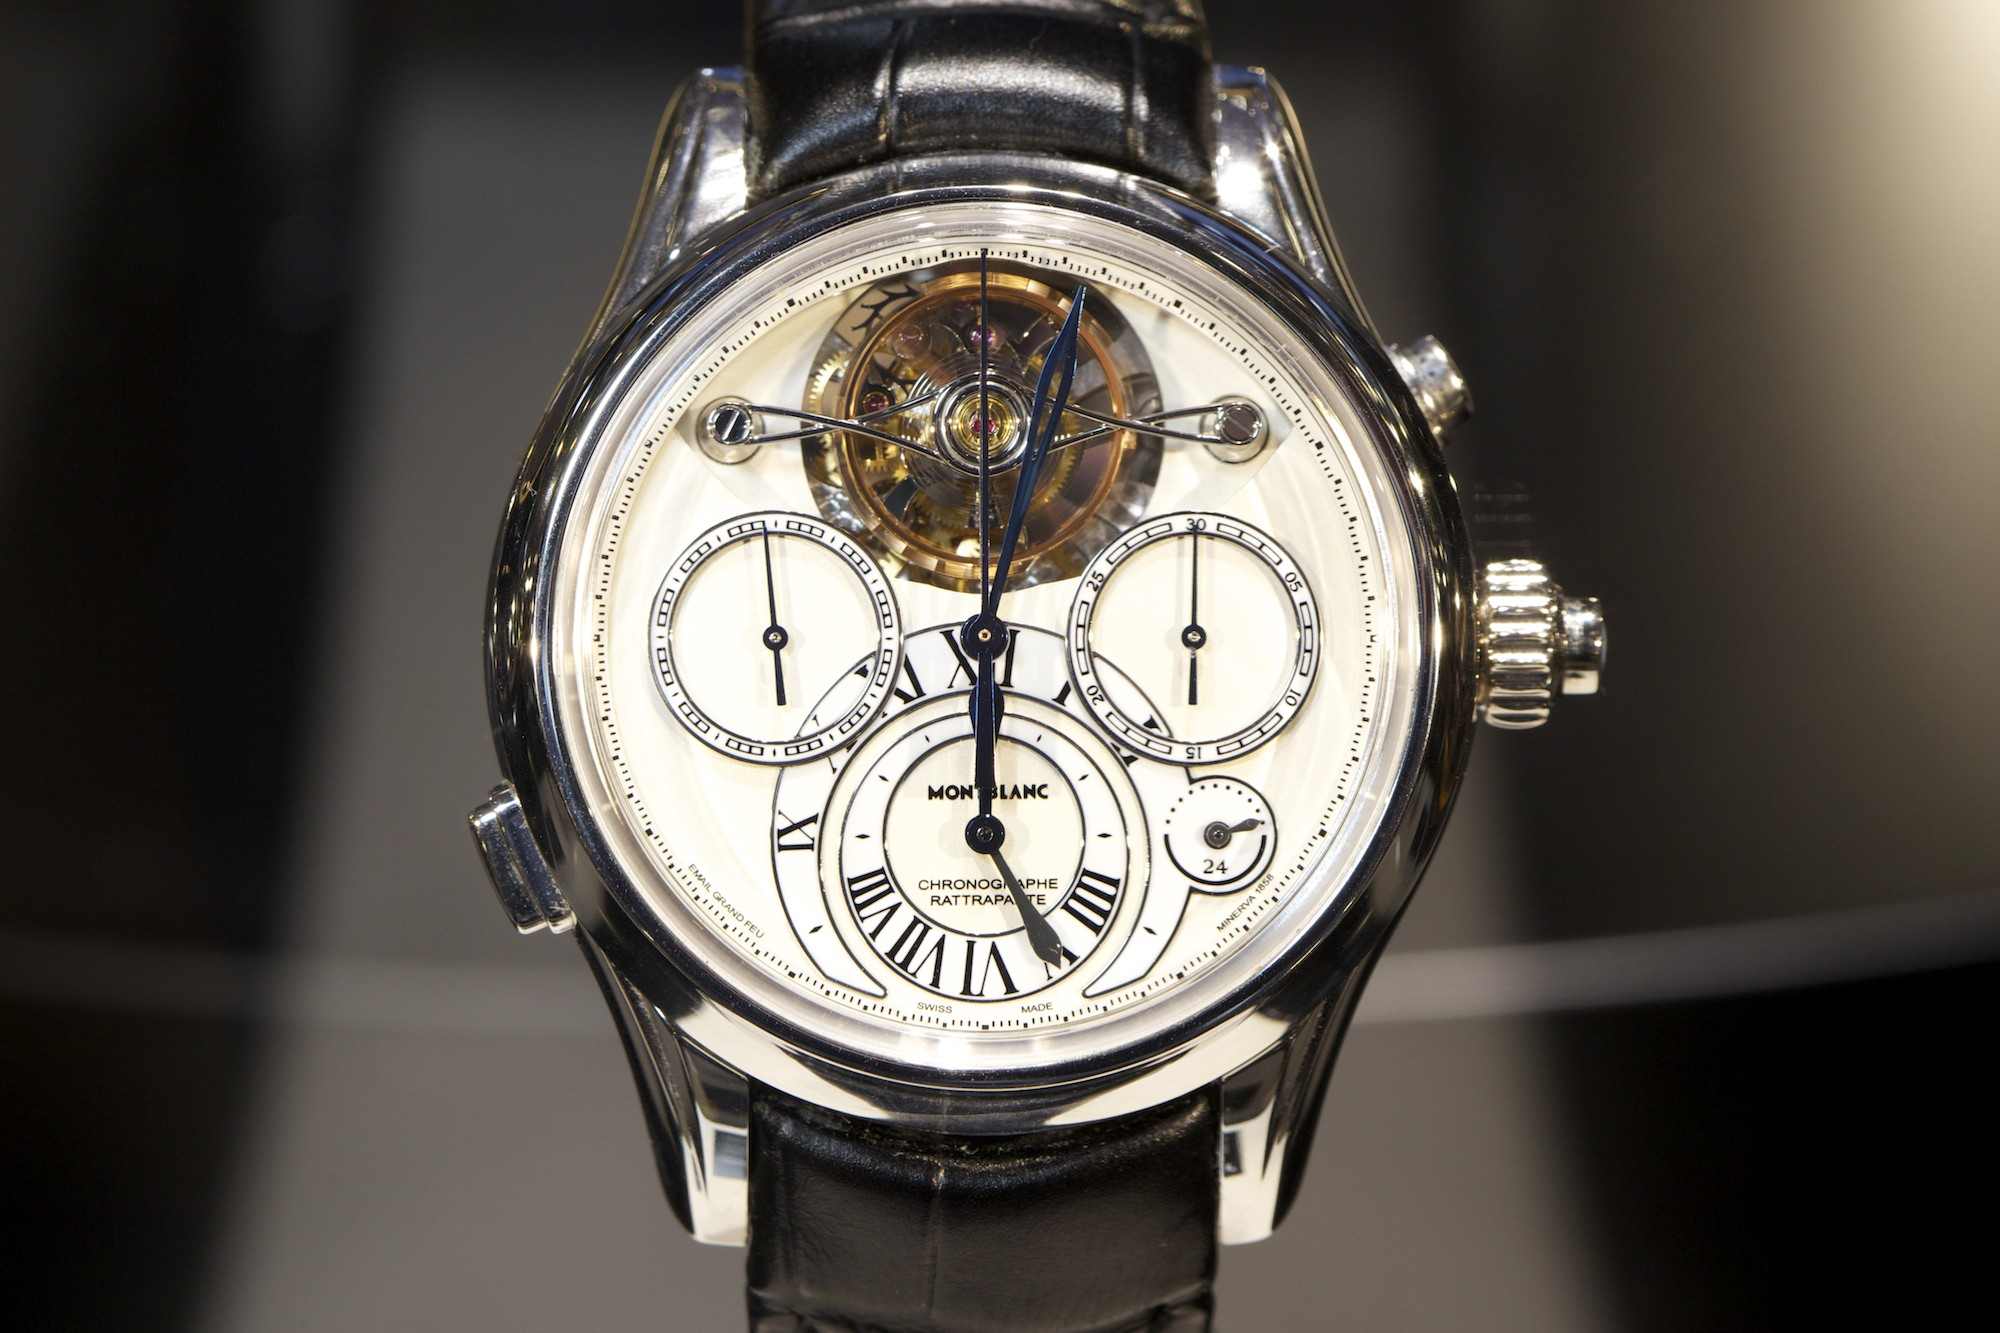 SIHH 2014 Montblanc Villeret Collection 1858 - Exo Tourbillon Rattrapante